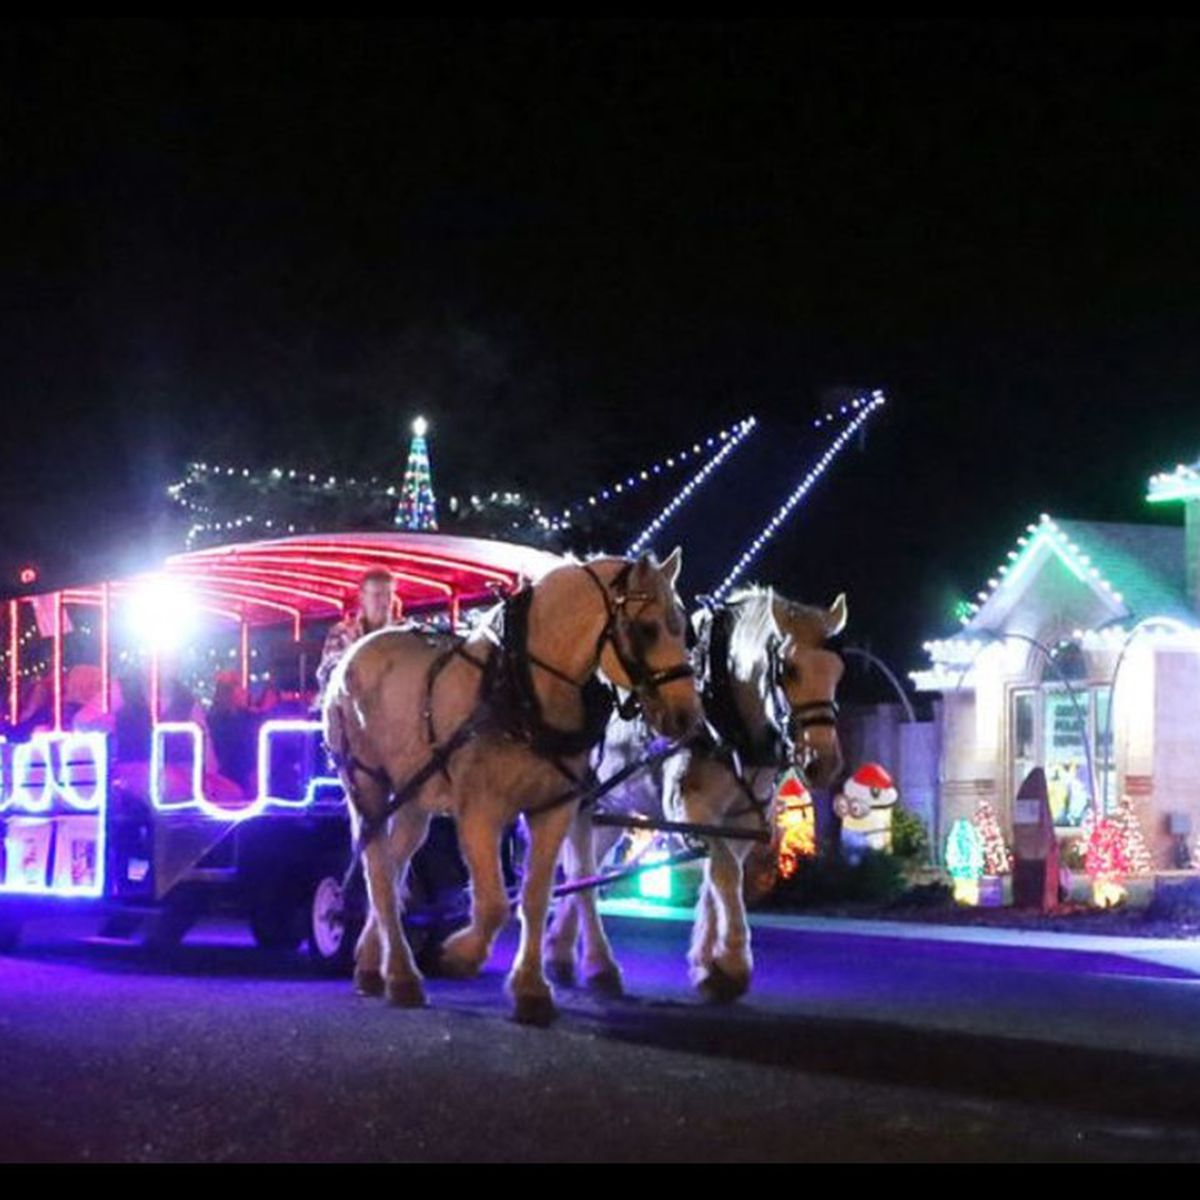 Christmas Carriage Rides Coming To West Texas